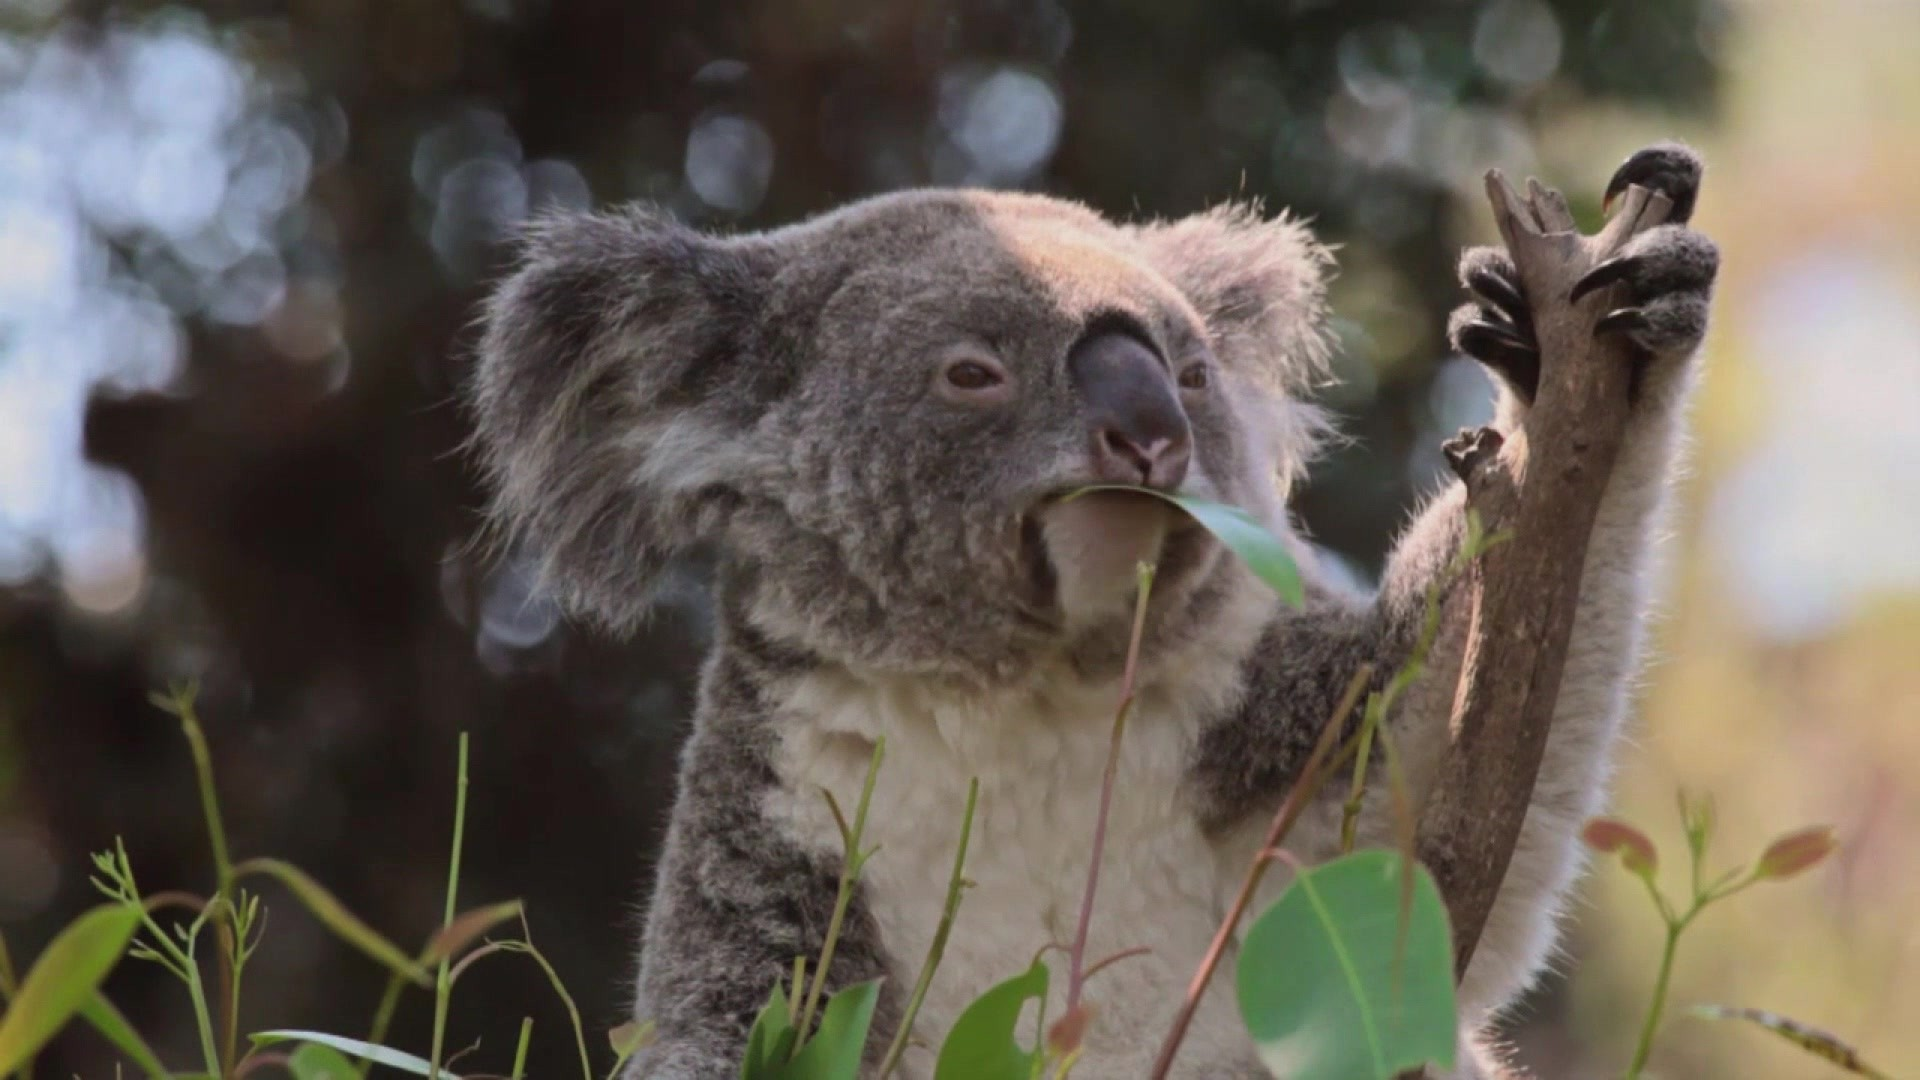 Res: 1920x1080, Super Gross Koala Stuff - Total Riff Off Video - National Geographic Channel